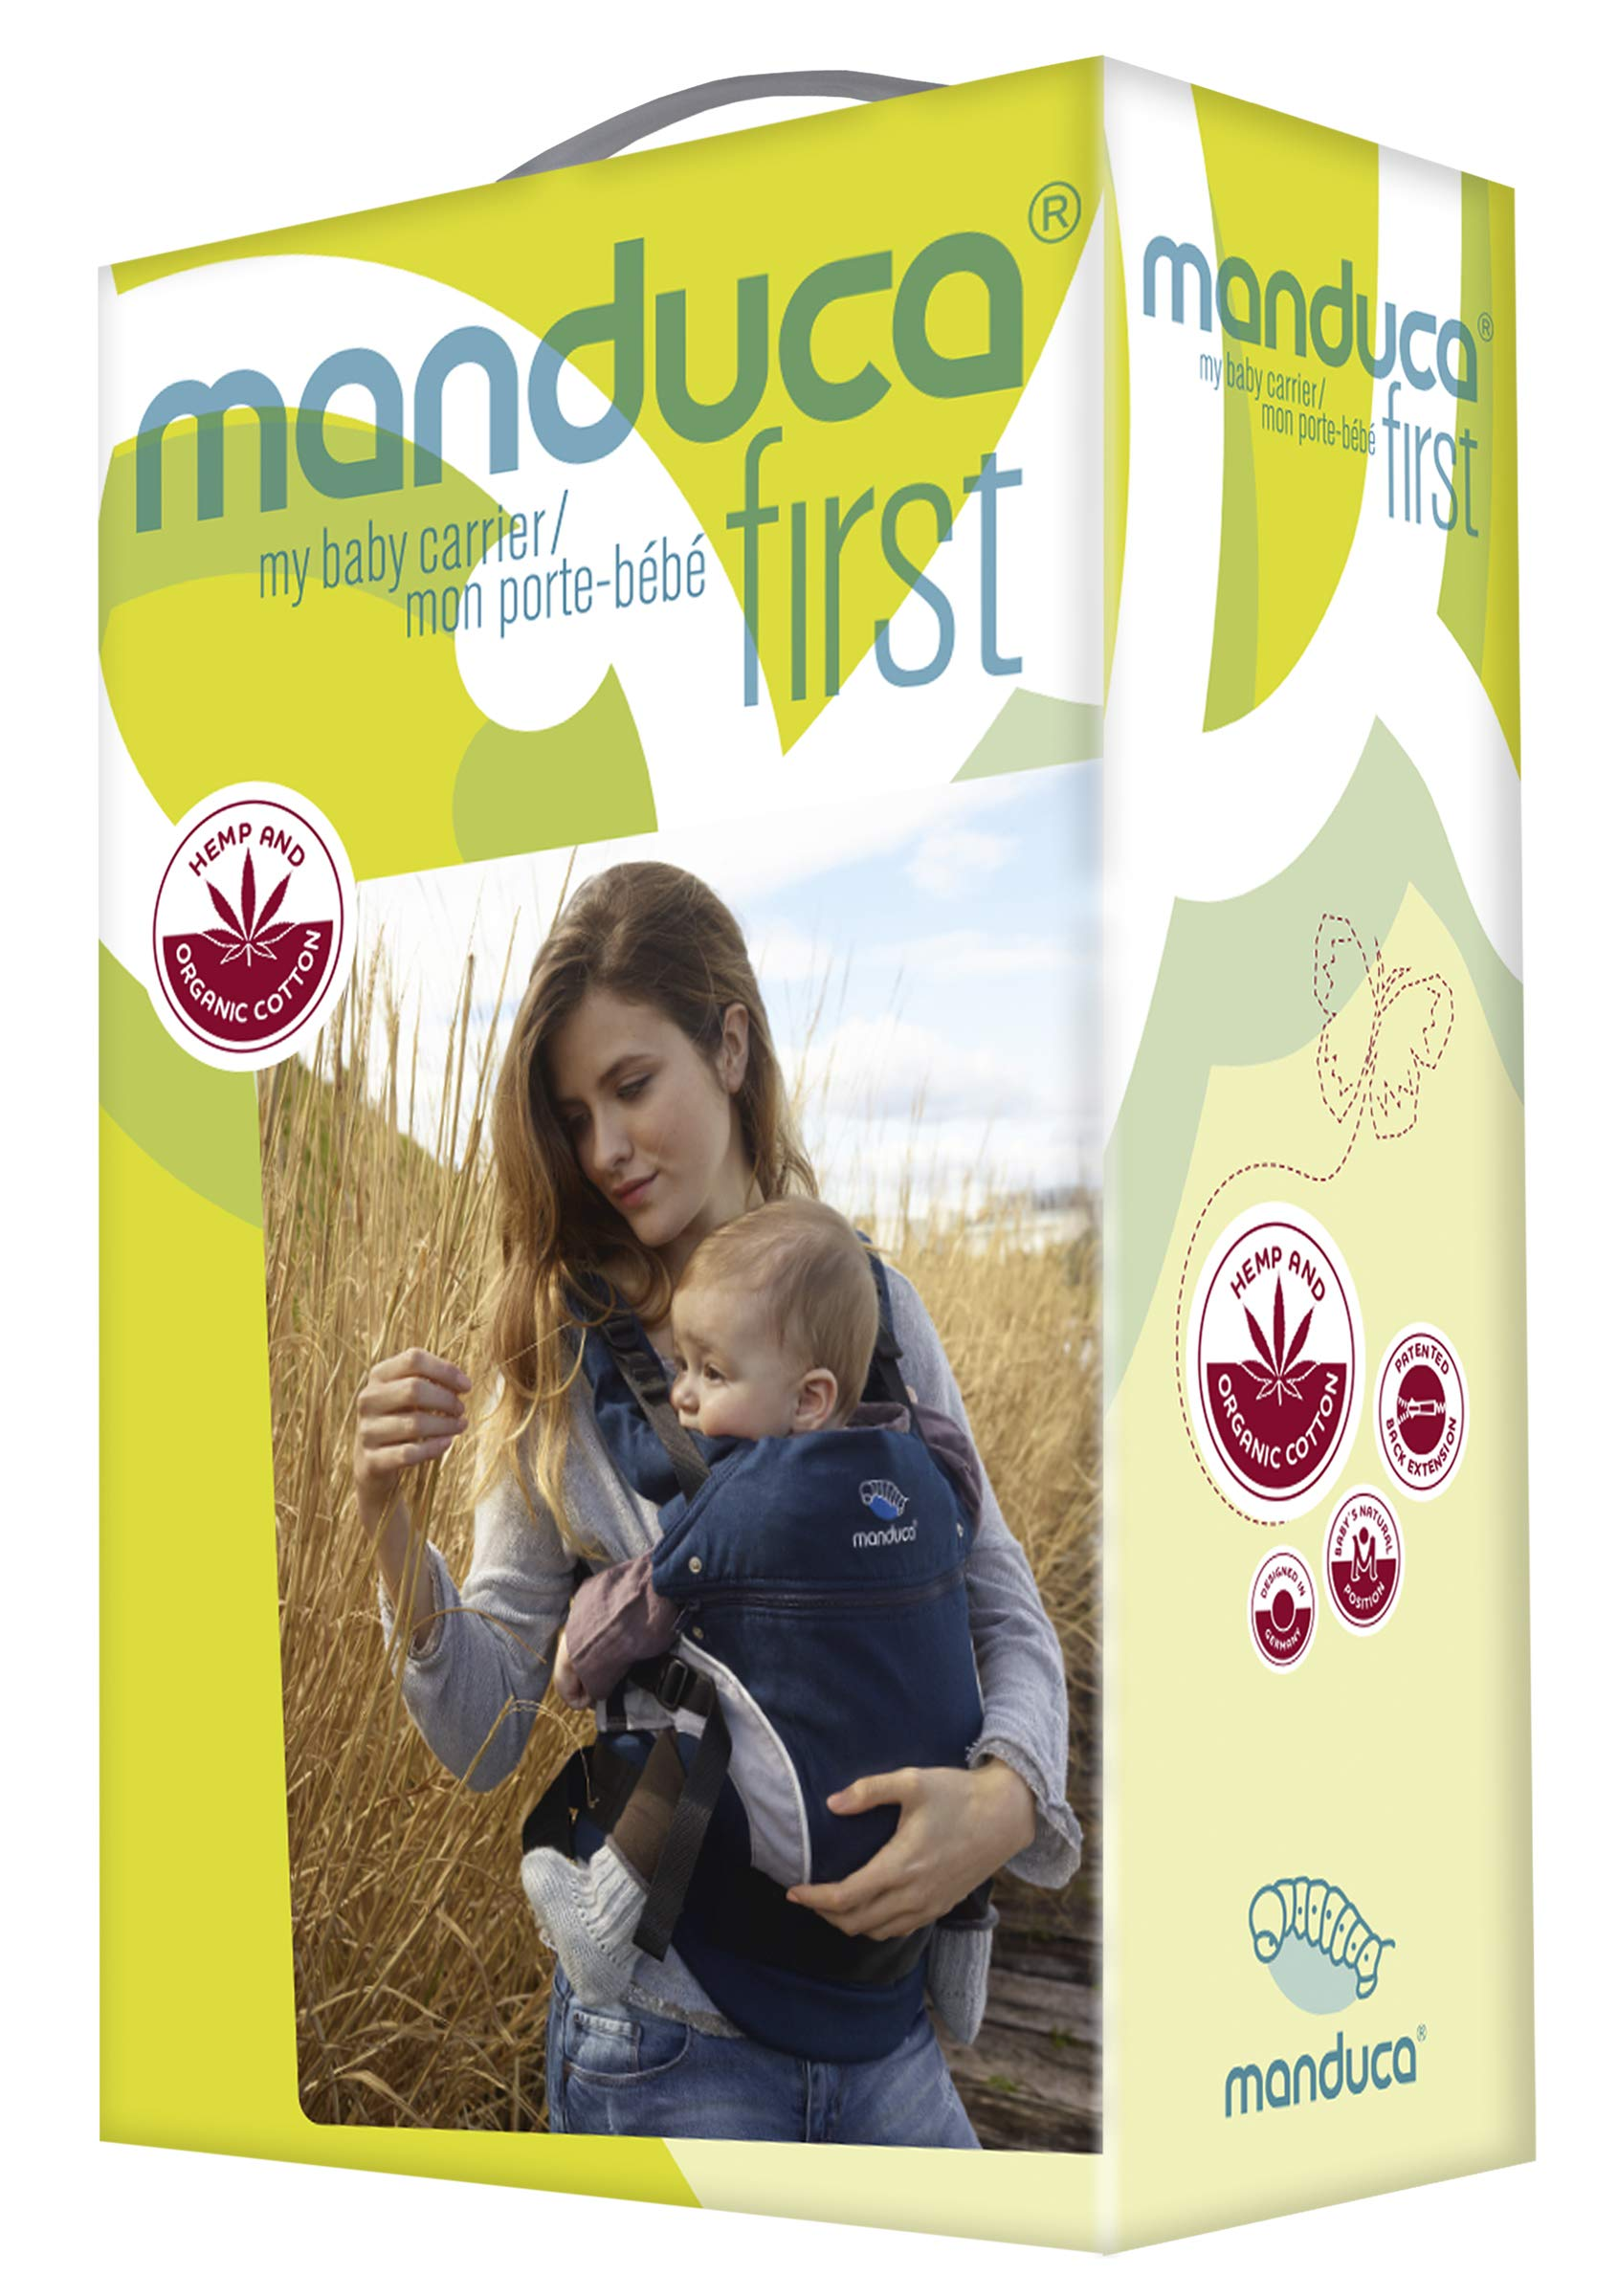 manduca First Baby Carrier > HempCotton Sand < Ergonomic Baby Carrier, Soft & Sturdy Canvas (Organic Cotton & Hemp), Front Carry, Hip Seat and Back Carry, from Newborn to Toddlers up to 20kg, Beige Manduca New features: Improved three-point-buckle (secure & easy to open); extra soft canvas made of 45% hemp and 55% organic cotton (outside), 100% organic cotton lining (inside) Already integrated in every baby carrier: infant pouch (newborn insert), stowable headrest & sun protection for your baby, patented back extension (grows with your child); Optional accessories for newborns: Size-It (seat reducer) and Zip-In Ellipse Ergonomic design for men & women: Soft padded shoulder straps (multiple adjustable) & anatomically shaped stable hipbelt (fits hips from 64cm to 140cm) ensure balanced weight distribution. No waist-belt extension needed 8